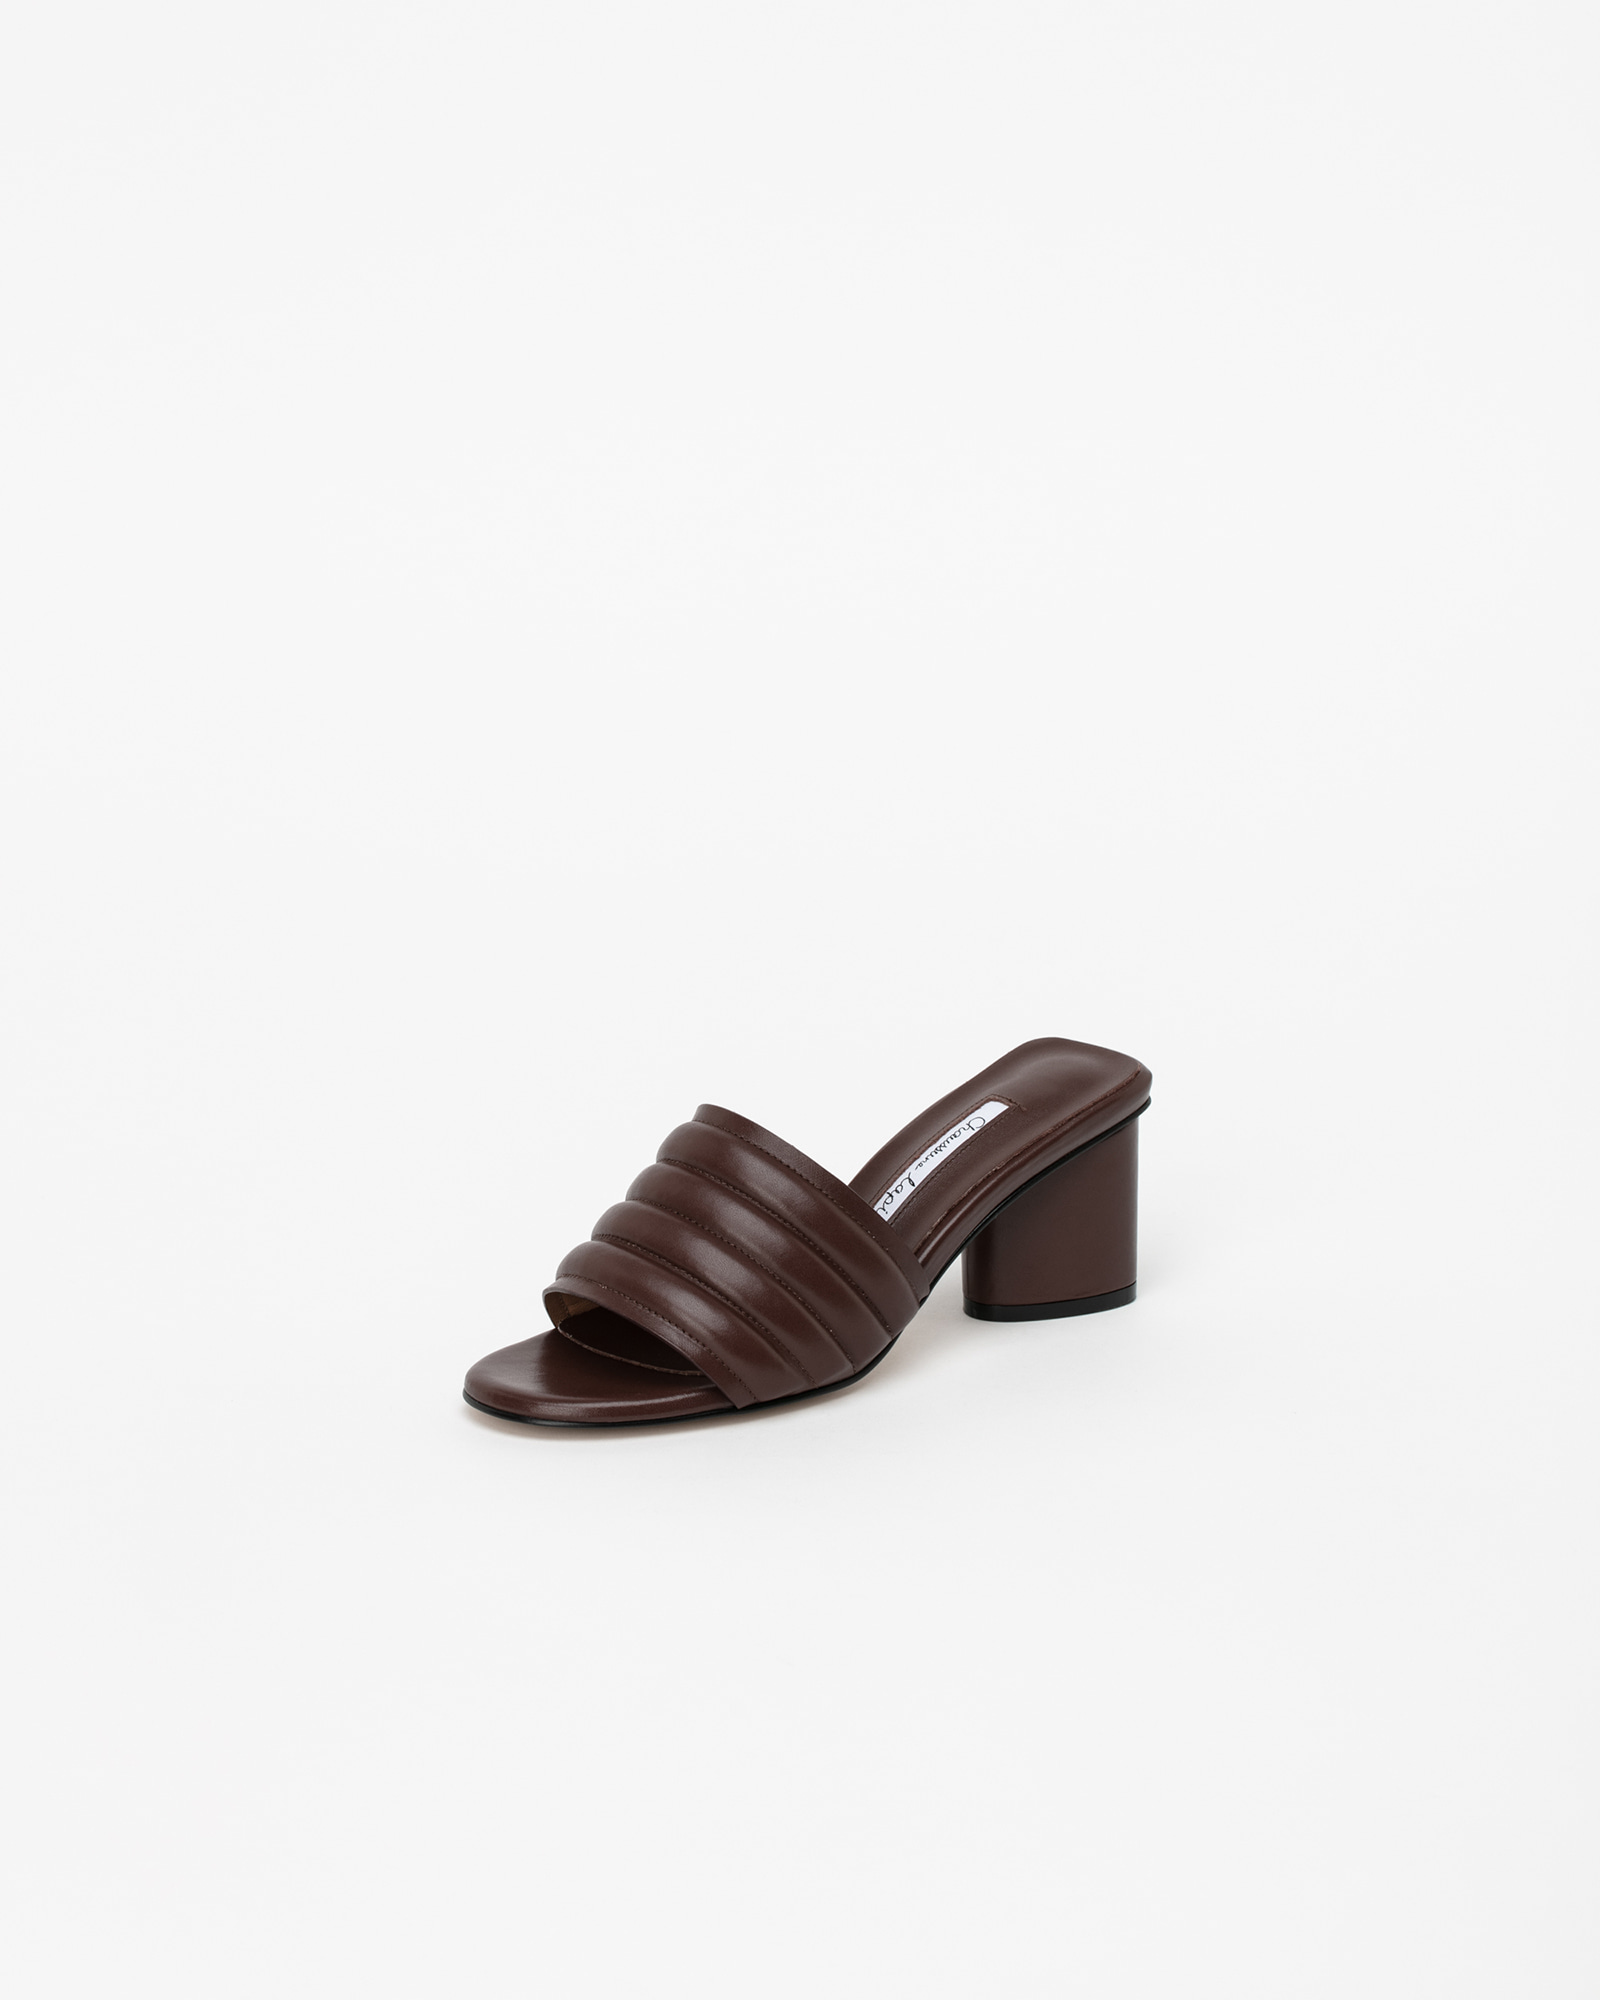 Alia Padded Mules in Iron Brown